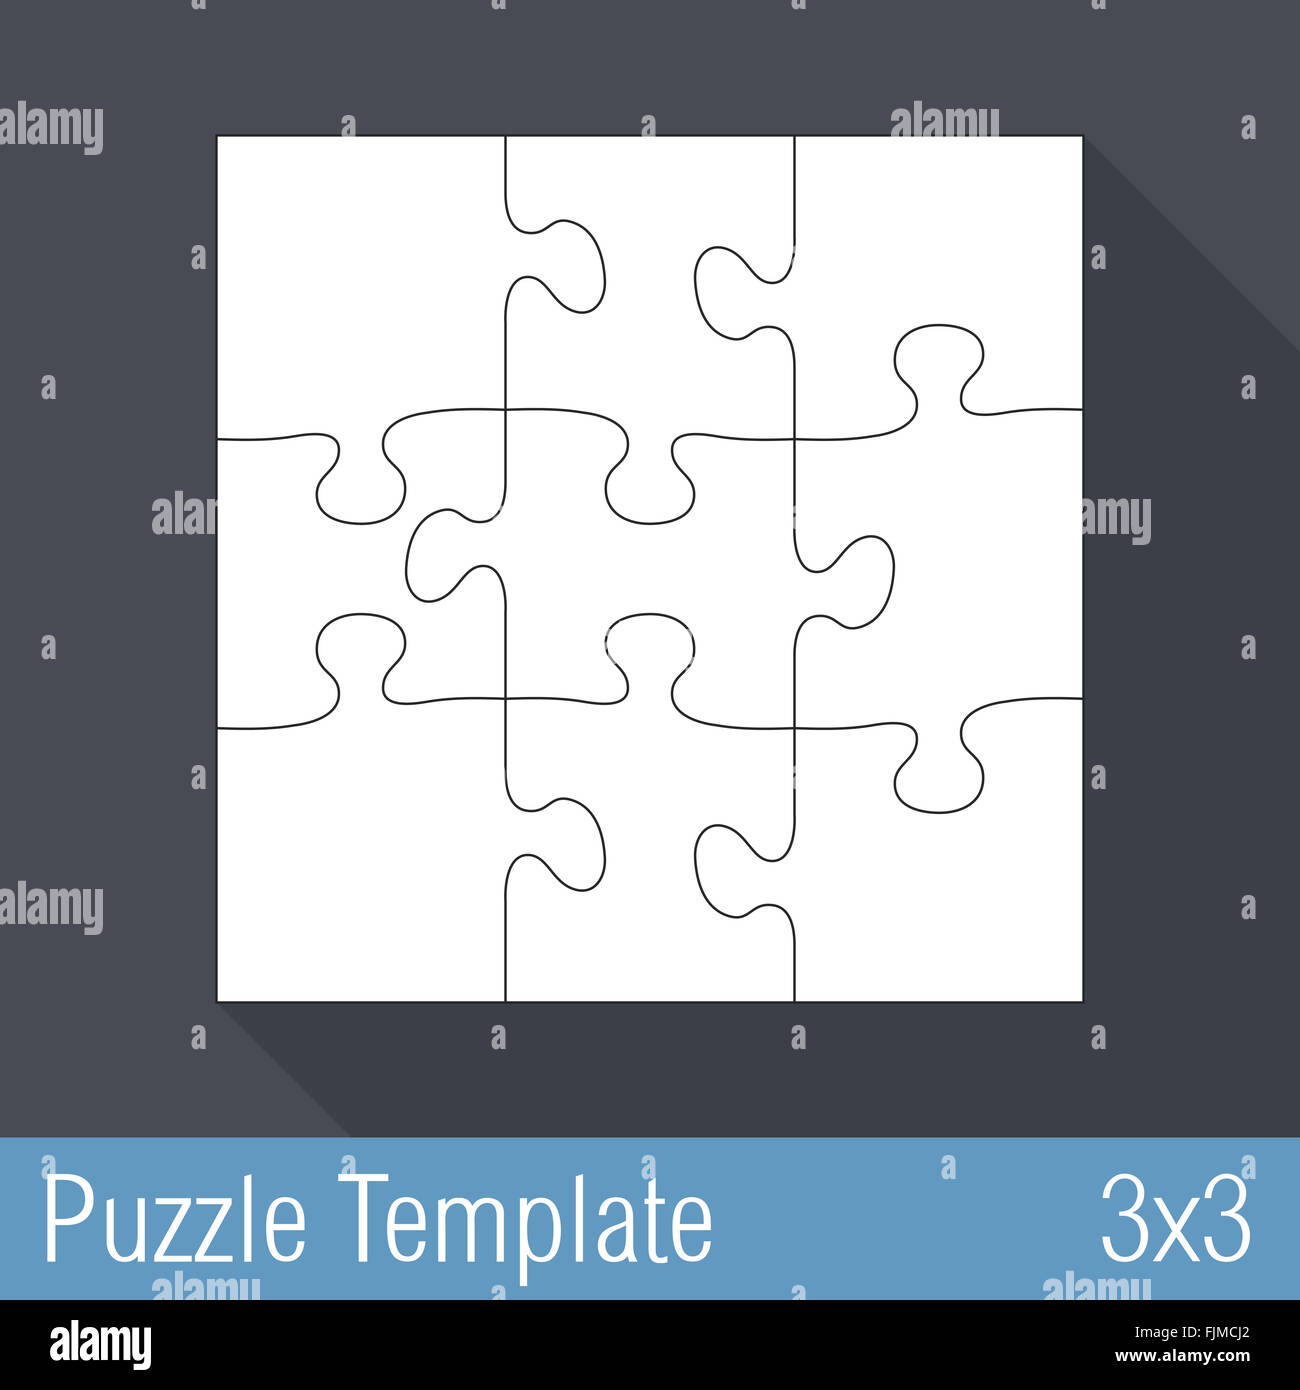 Square jigsaw puzzle template 3x3 pieces Stock Photo: 97564602 - Alamy